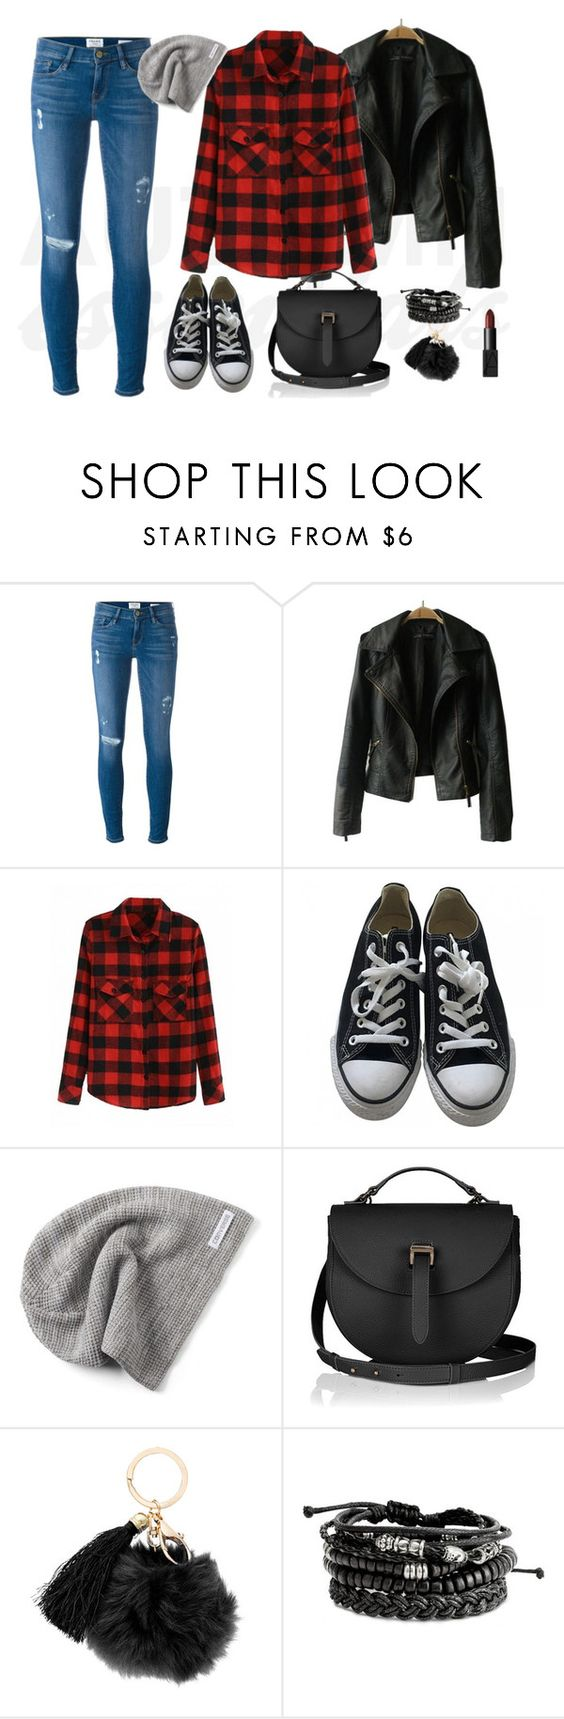 Black converse autumn set by siostranocy on Polyvore featuring moda, Frame Denim, Converse and NARS Cosmetics